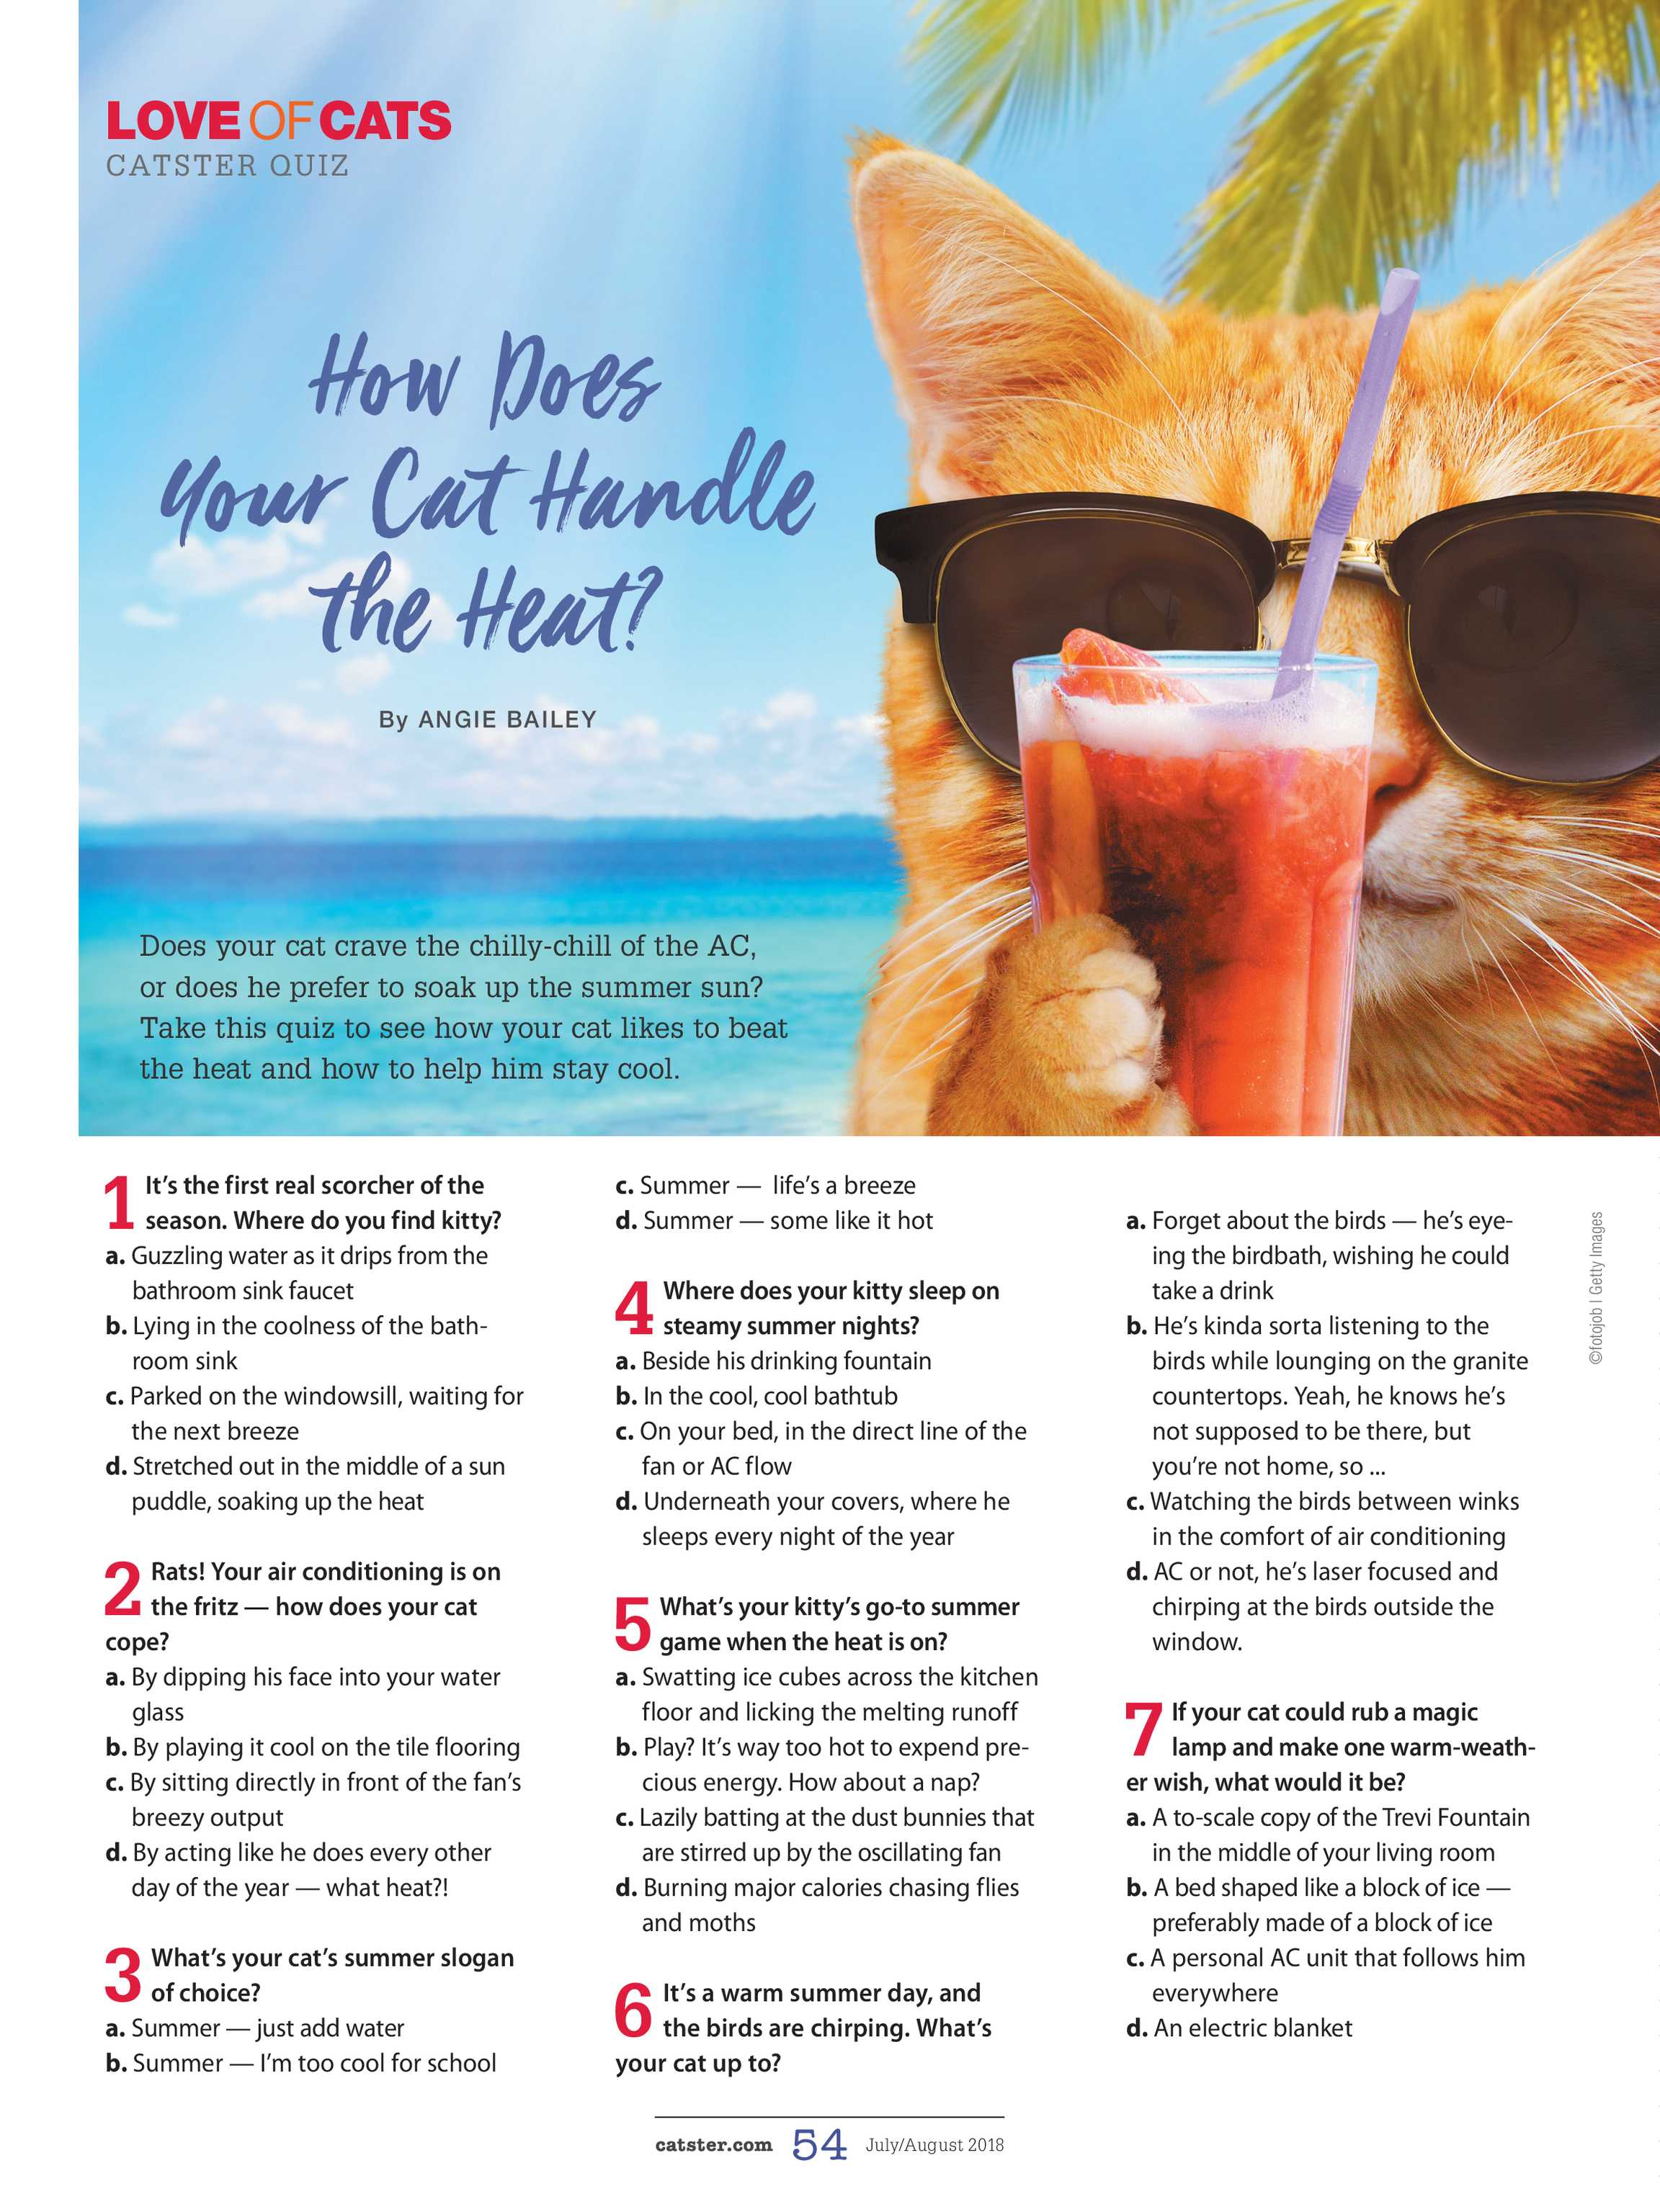 Catster Magazine - July/August 2018 - page 54